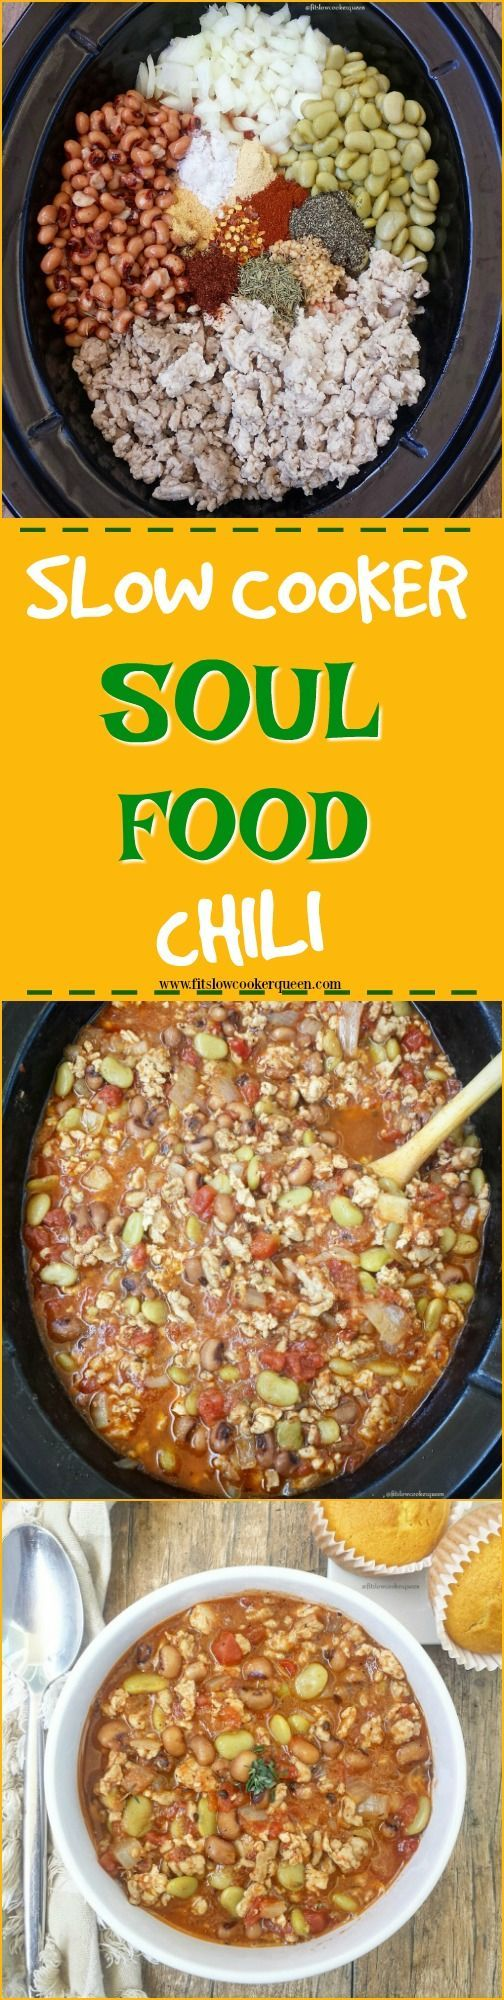 Crockpot / Slow Cooker Soul food ingredients and flavors take over the slow cooker for this unique spin on chili. Hearty yet healthy, this comfort food can be eaten year-round.